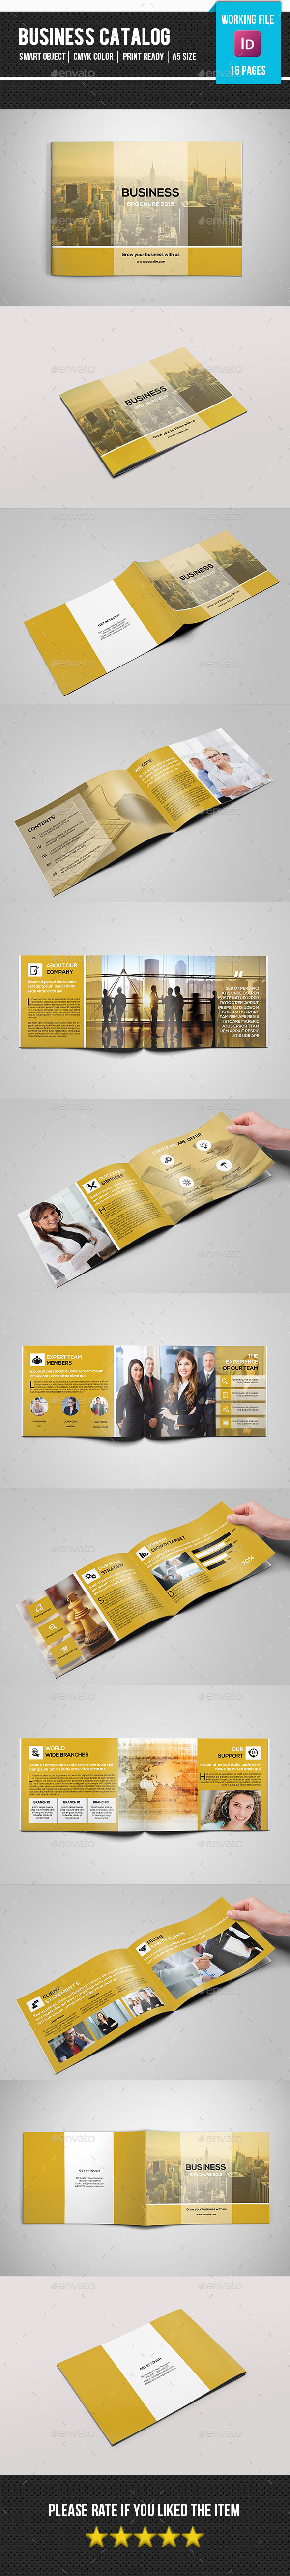 GraphicRiver A5 Corporate Catalog-V173 11891739